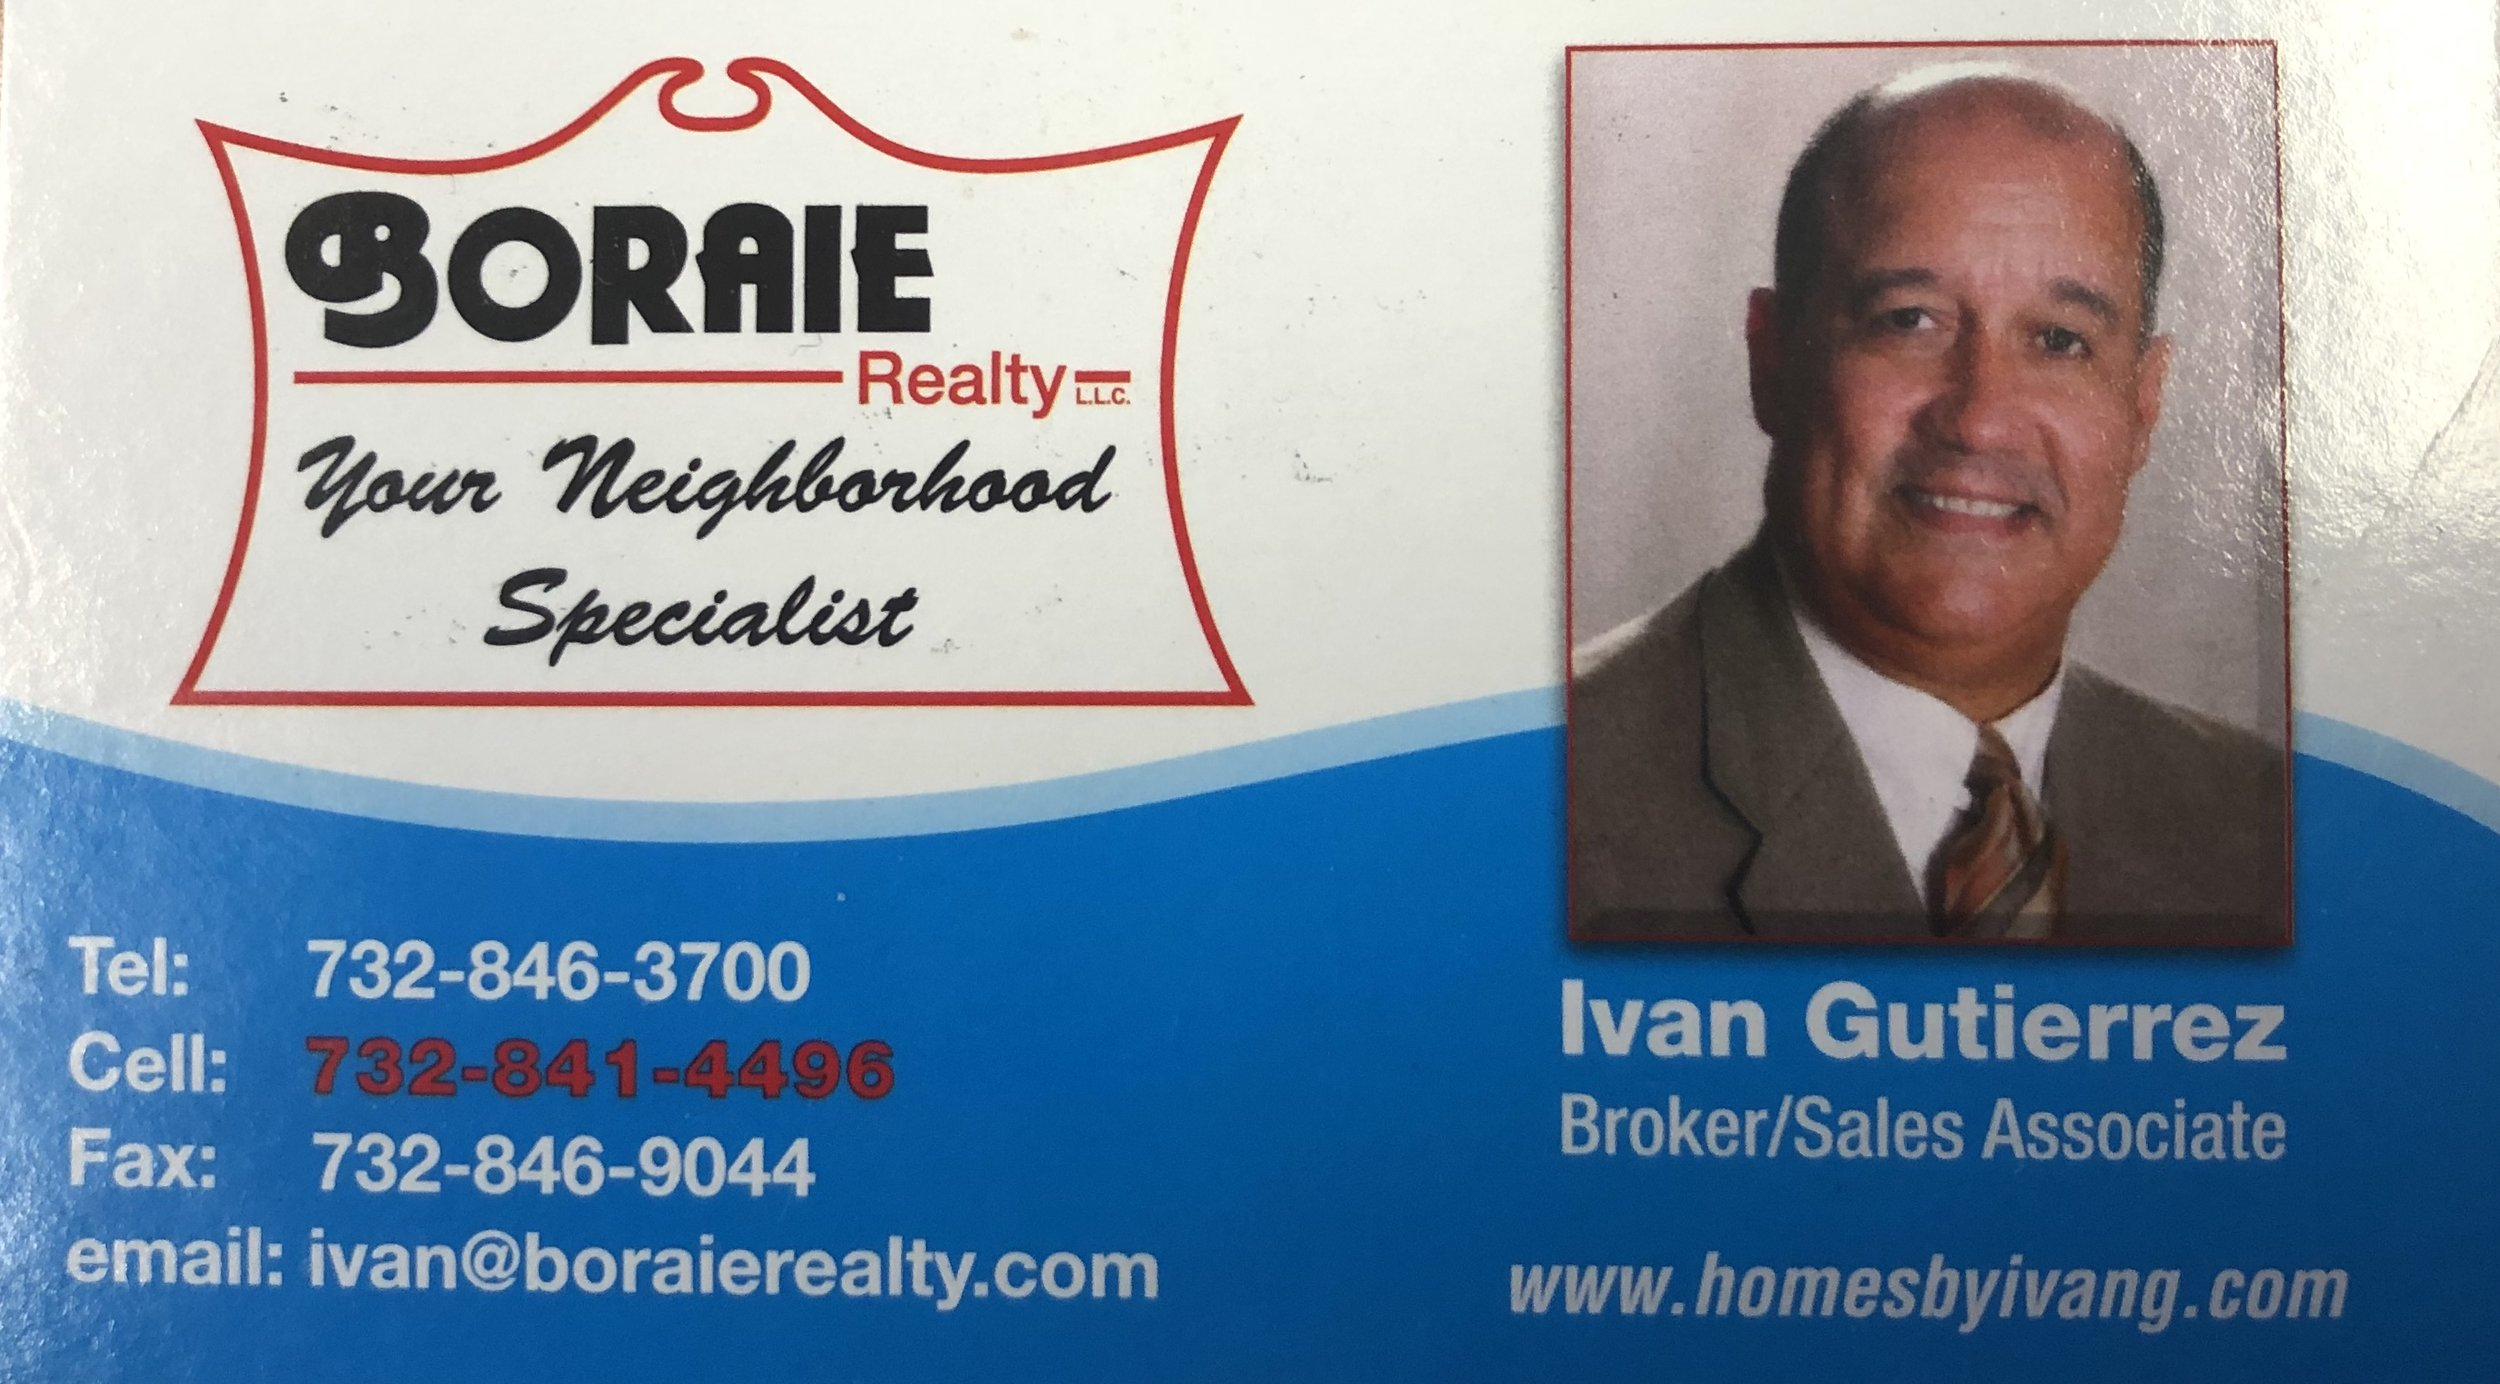 """Ivan Gutierrez - """"As a premier real estate agent in Central Jersey, I'm here to provide you with all the resources and information you need to buy or sell real estate. I work with buyers and sellers in Monmouth County, Mercer County, Somerset County and Middlesex County, and the surrounding areas and I've had extensive training in the latest real estate marketing strategies. I'm confident that I can offer you knowledge and tools most other agents can't""""."""